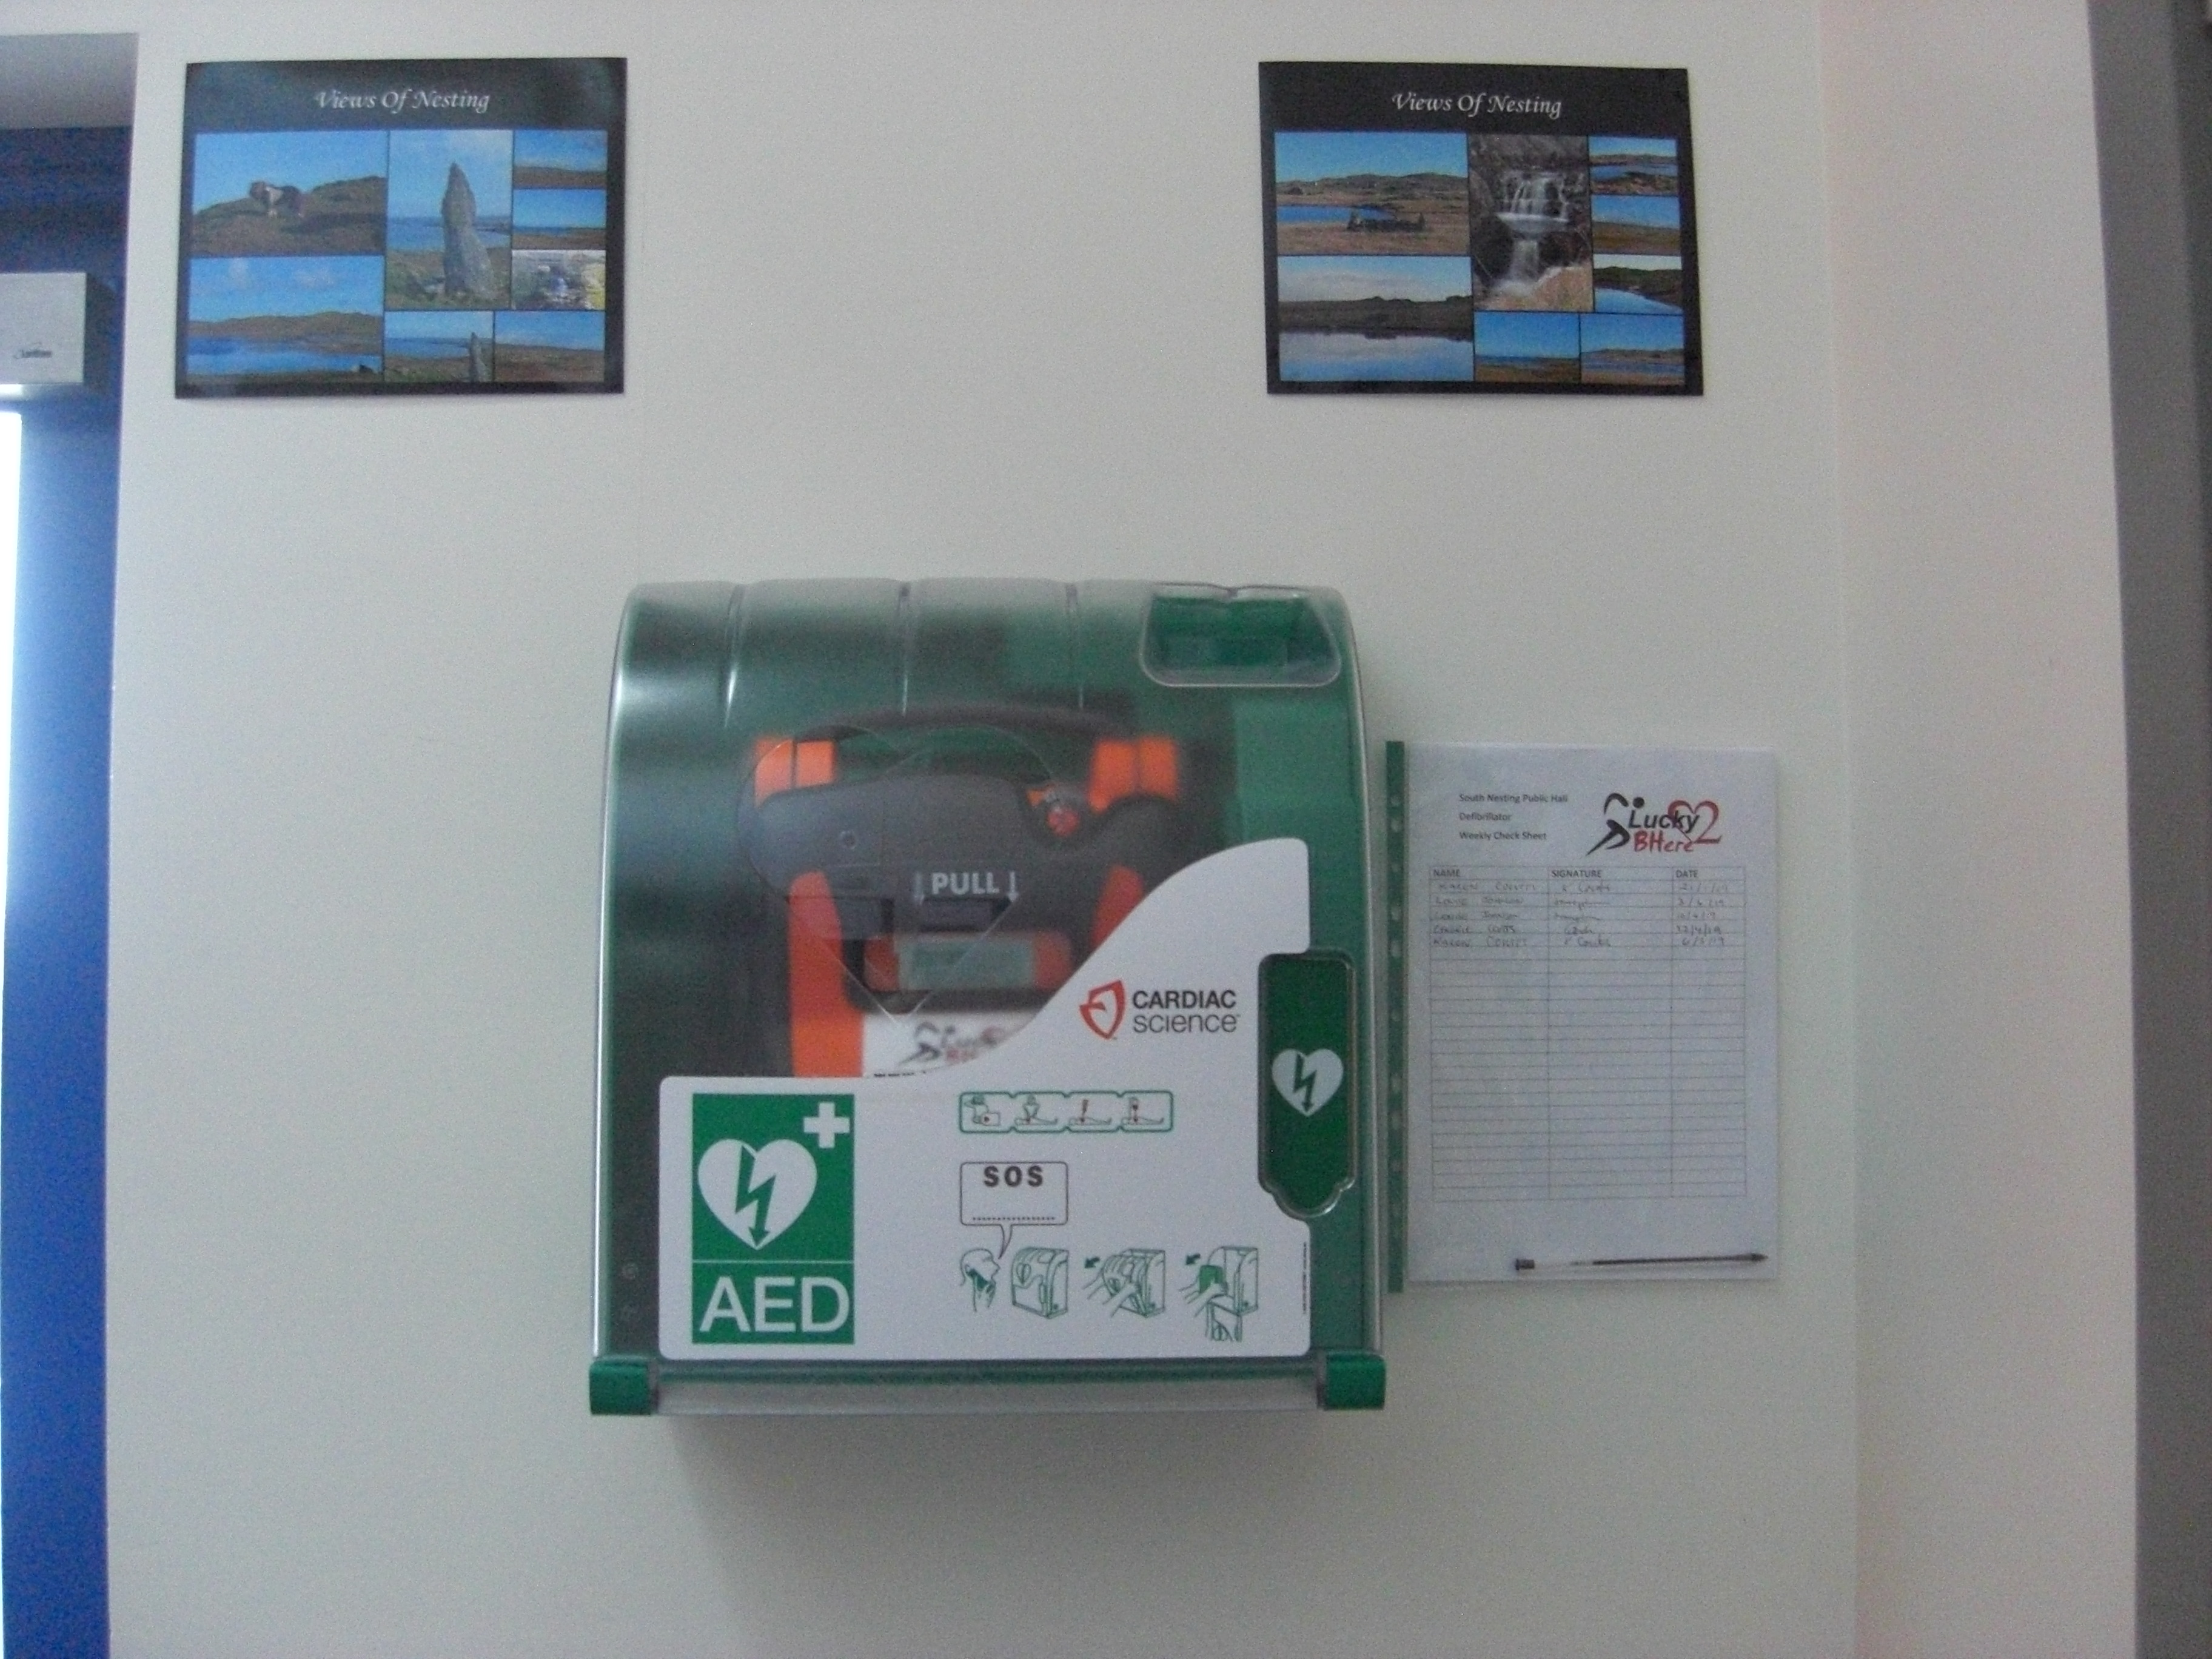 Defib at South Nesting Public Hall